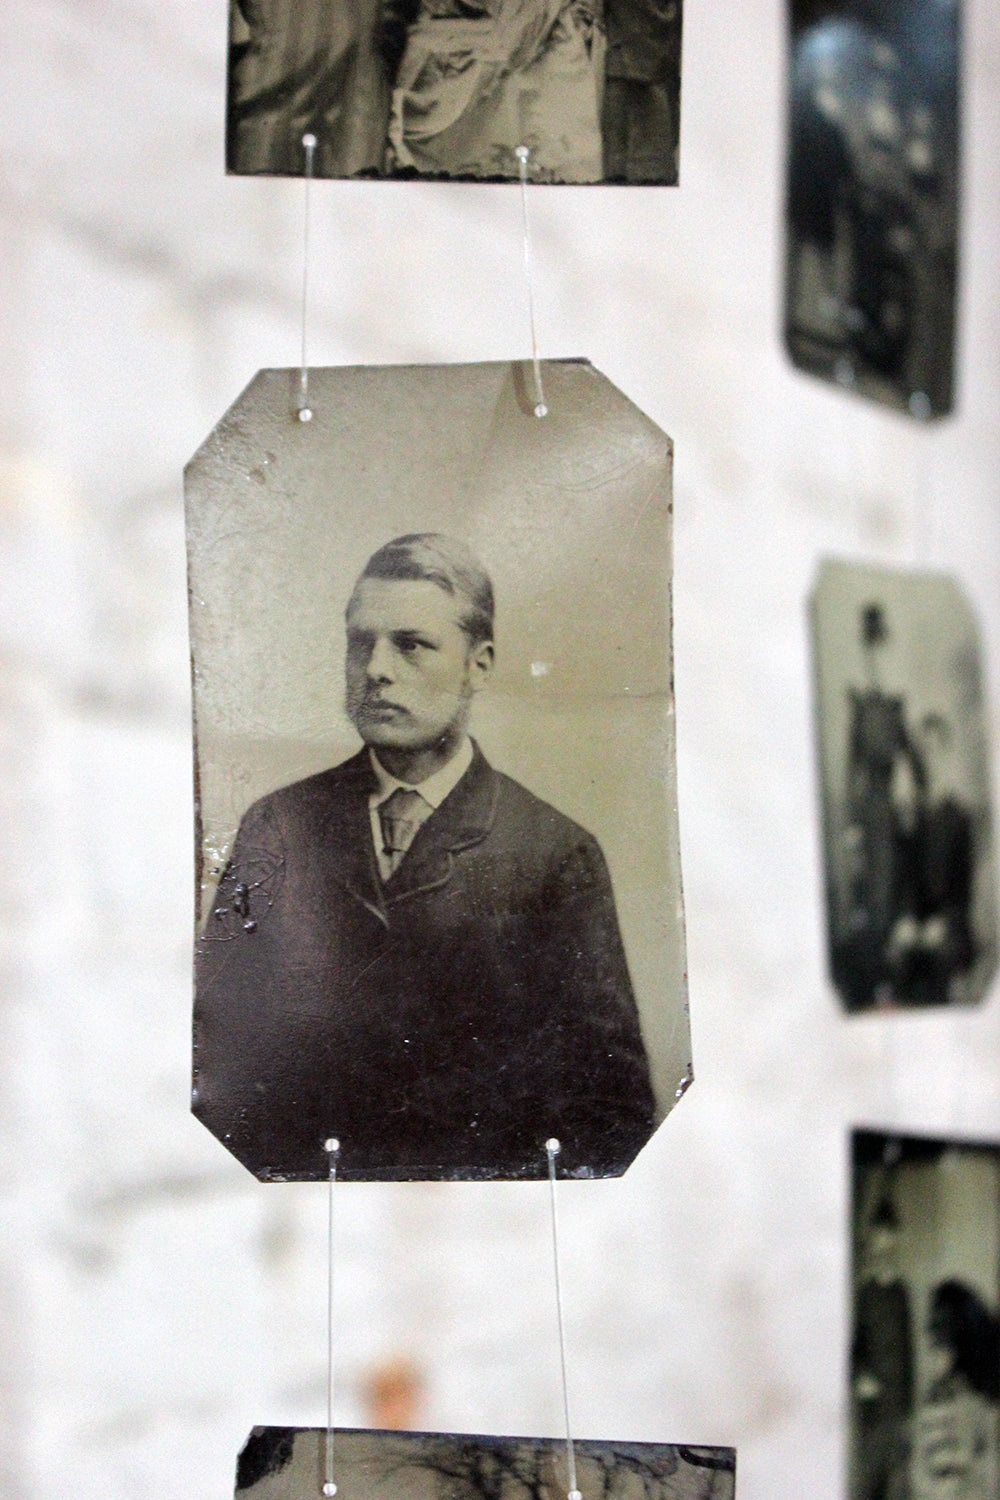 'Remember Us?'; A Vast Collection of 150 19thC Tinplate Portrait Photographs c.1850-1900